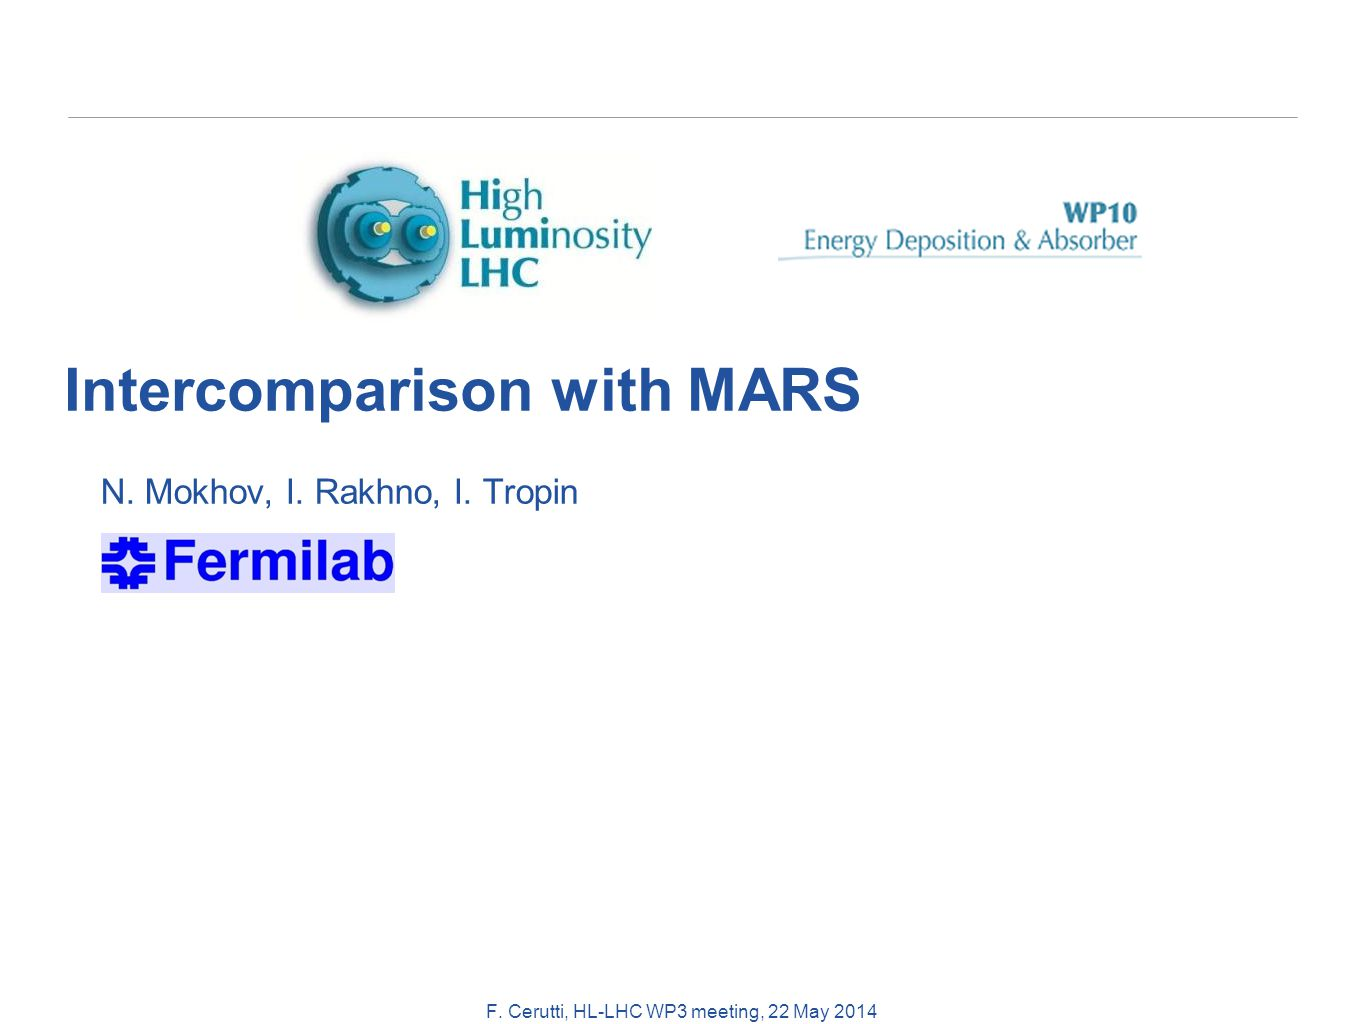 F. Cerutti, HL-LHC WP3 meeting, 22 May 2014 Intercomparison with MARS N. Mokhov, I. Rakhno, I. Tropin